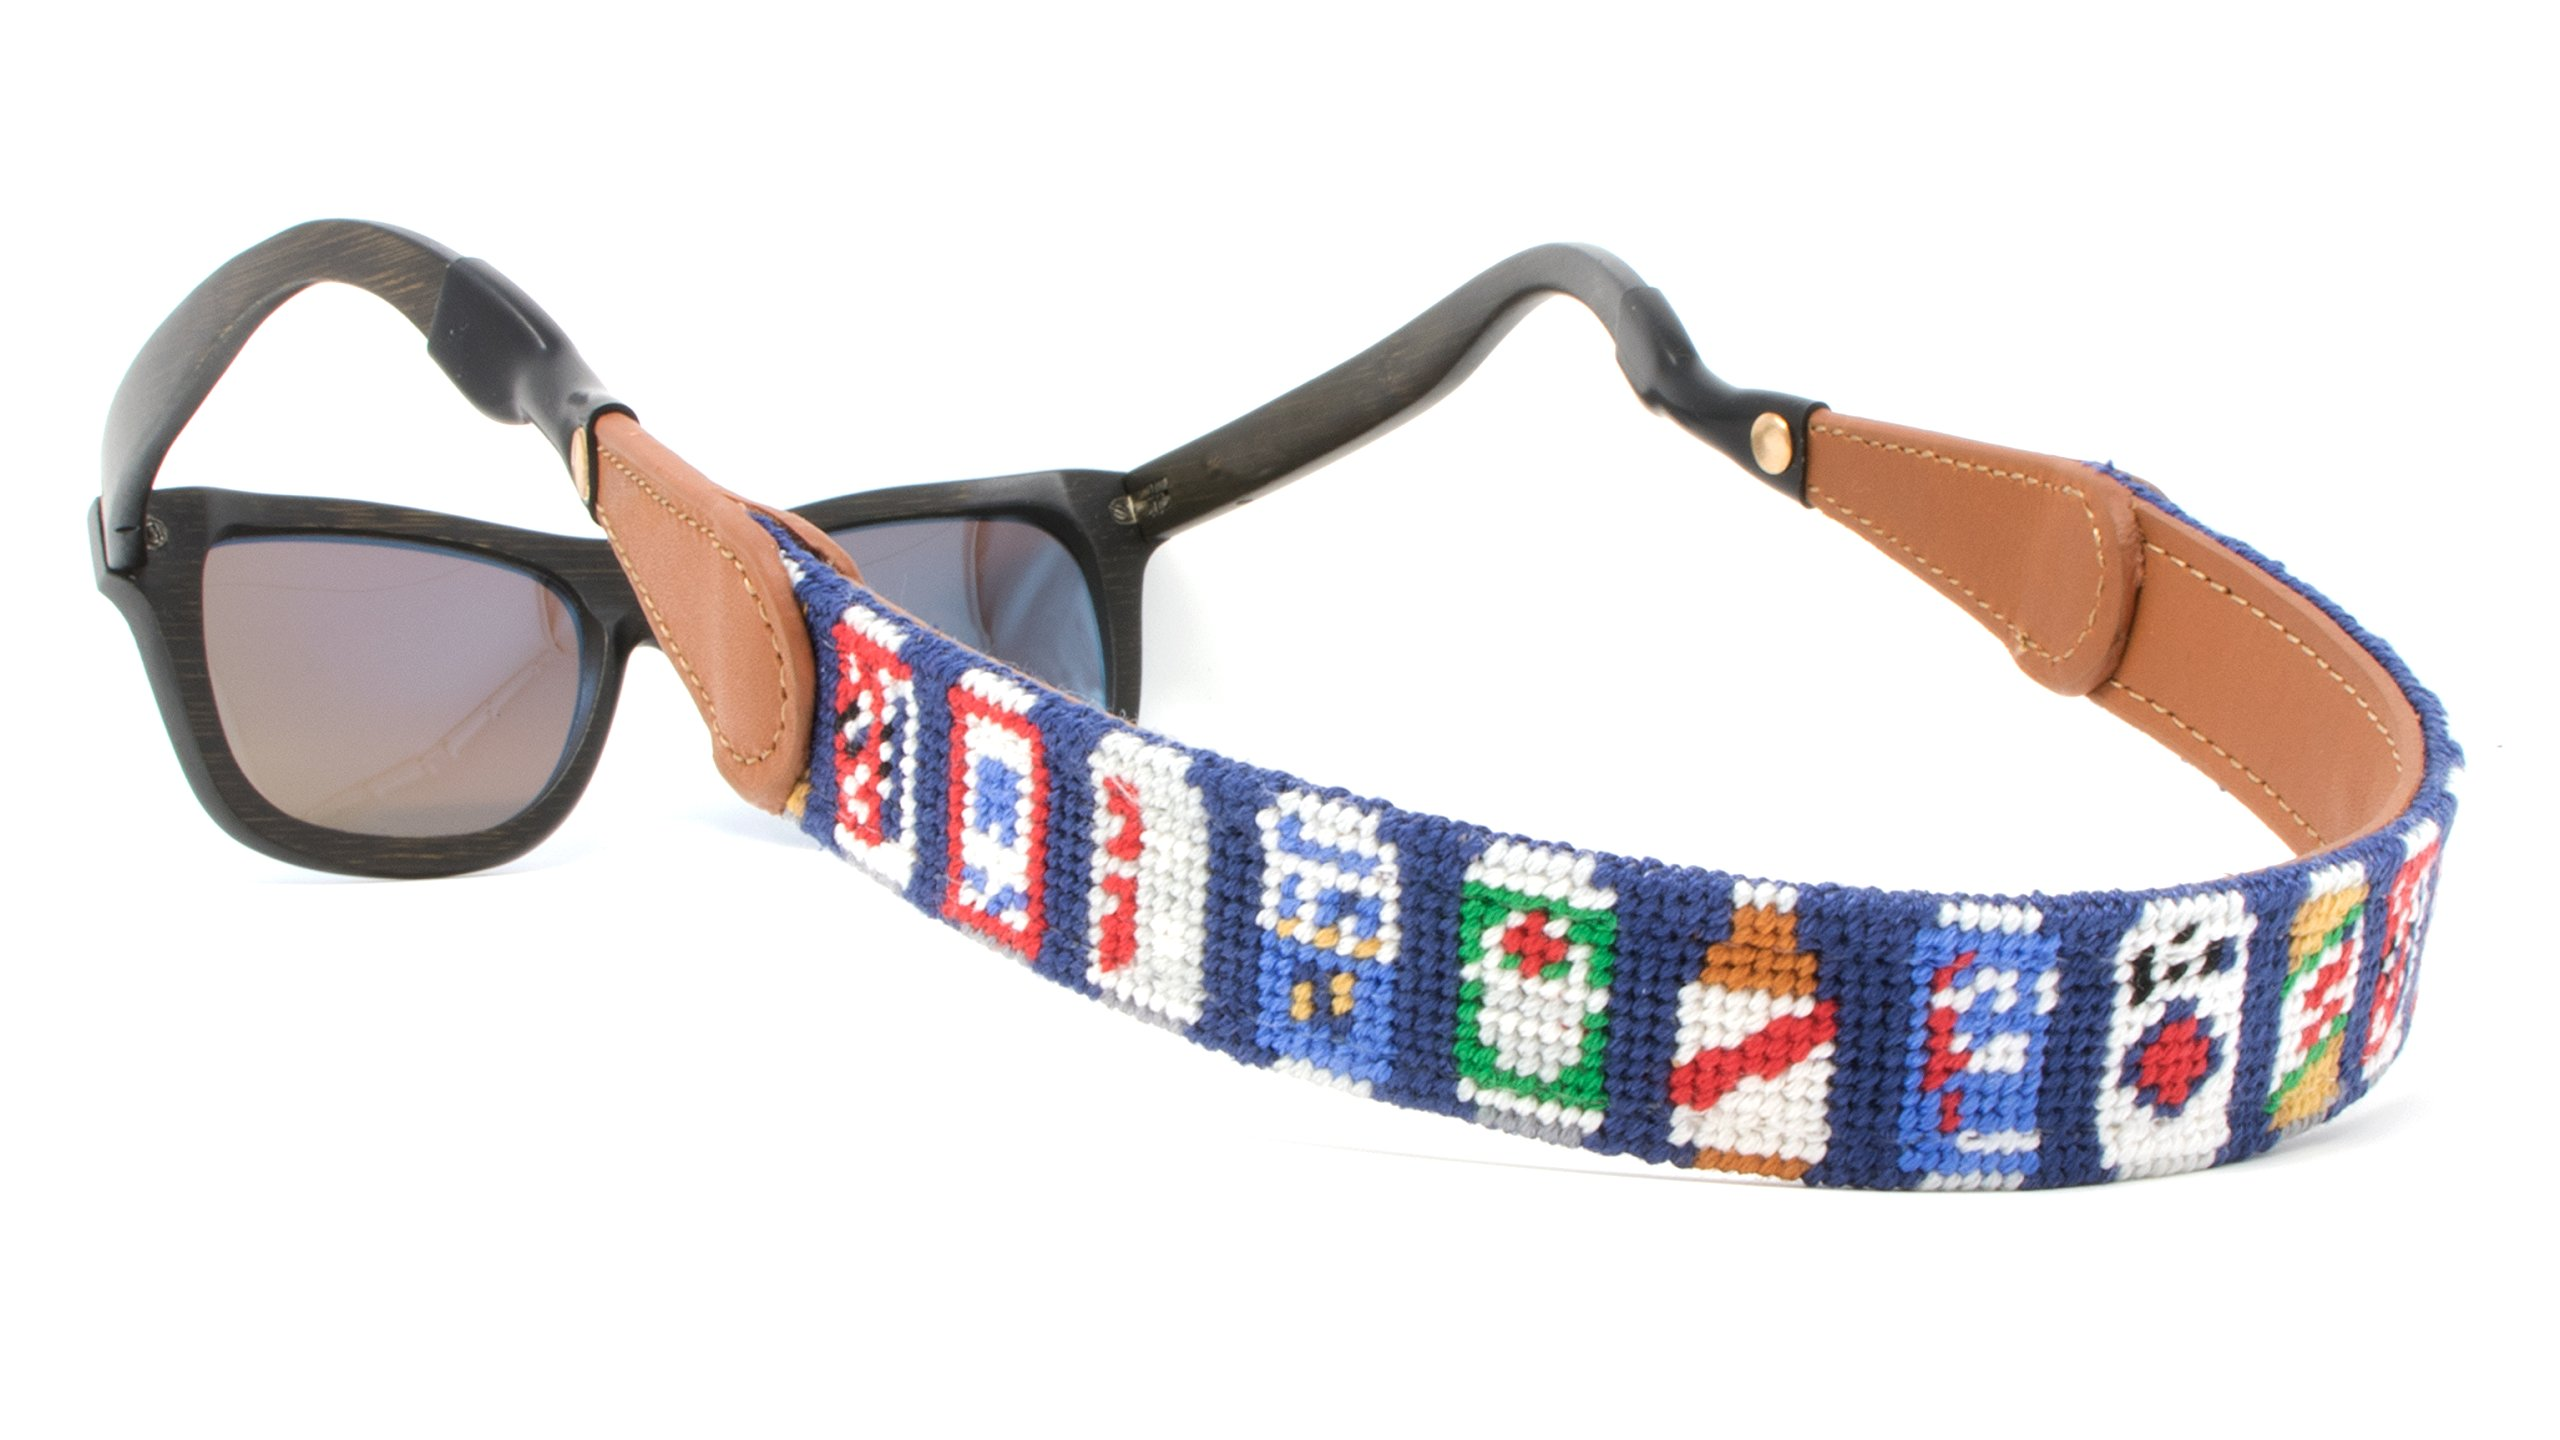 Needlepoint Sunglass Strap Sunglass Retainer by Huck Venture (Beer Can) by Huck Venture